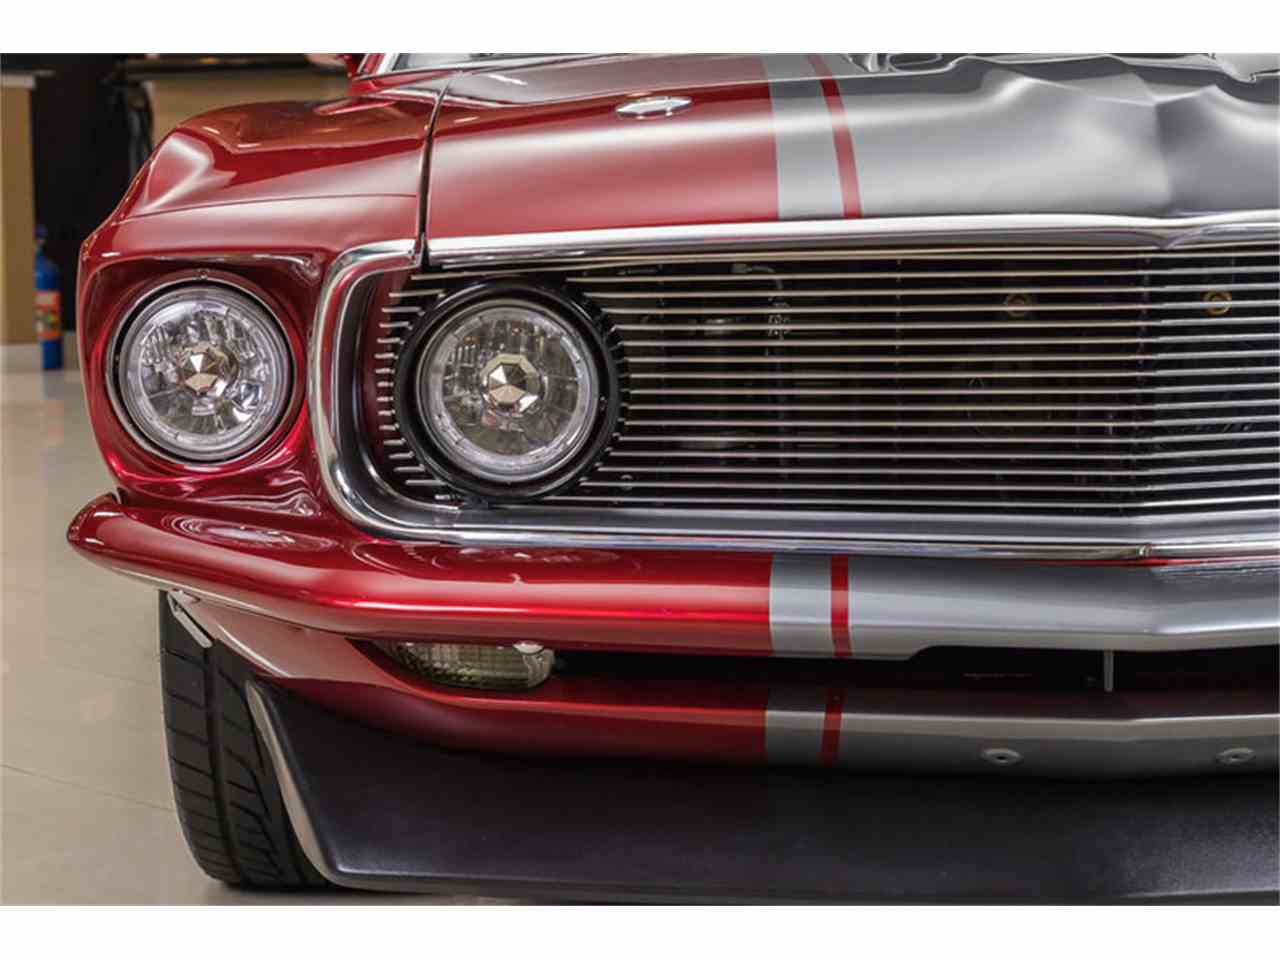 Picture of 1969 ford mustang fastback exterior - Photo 18